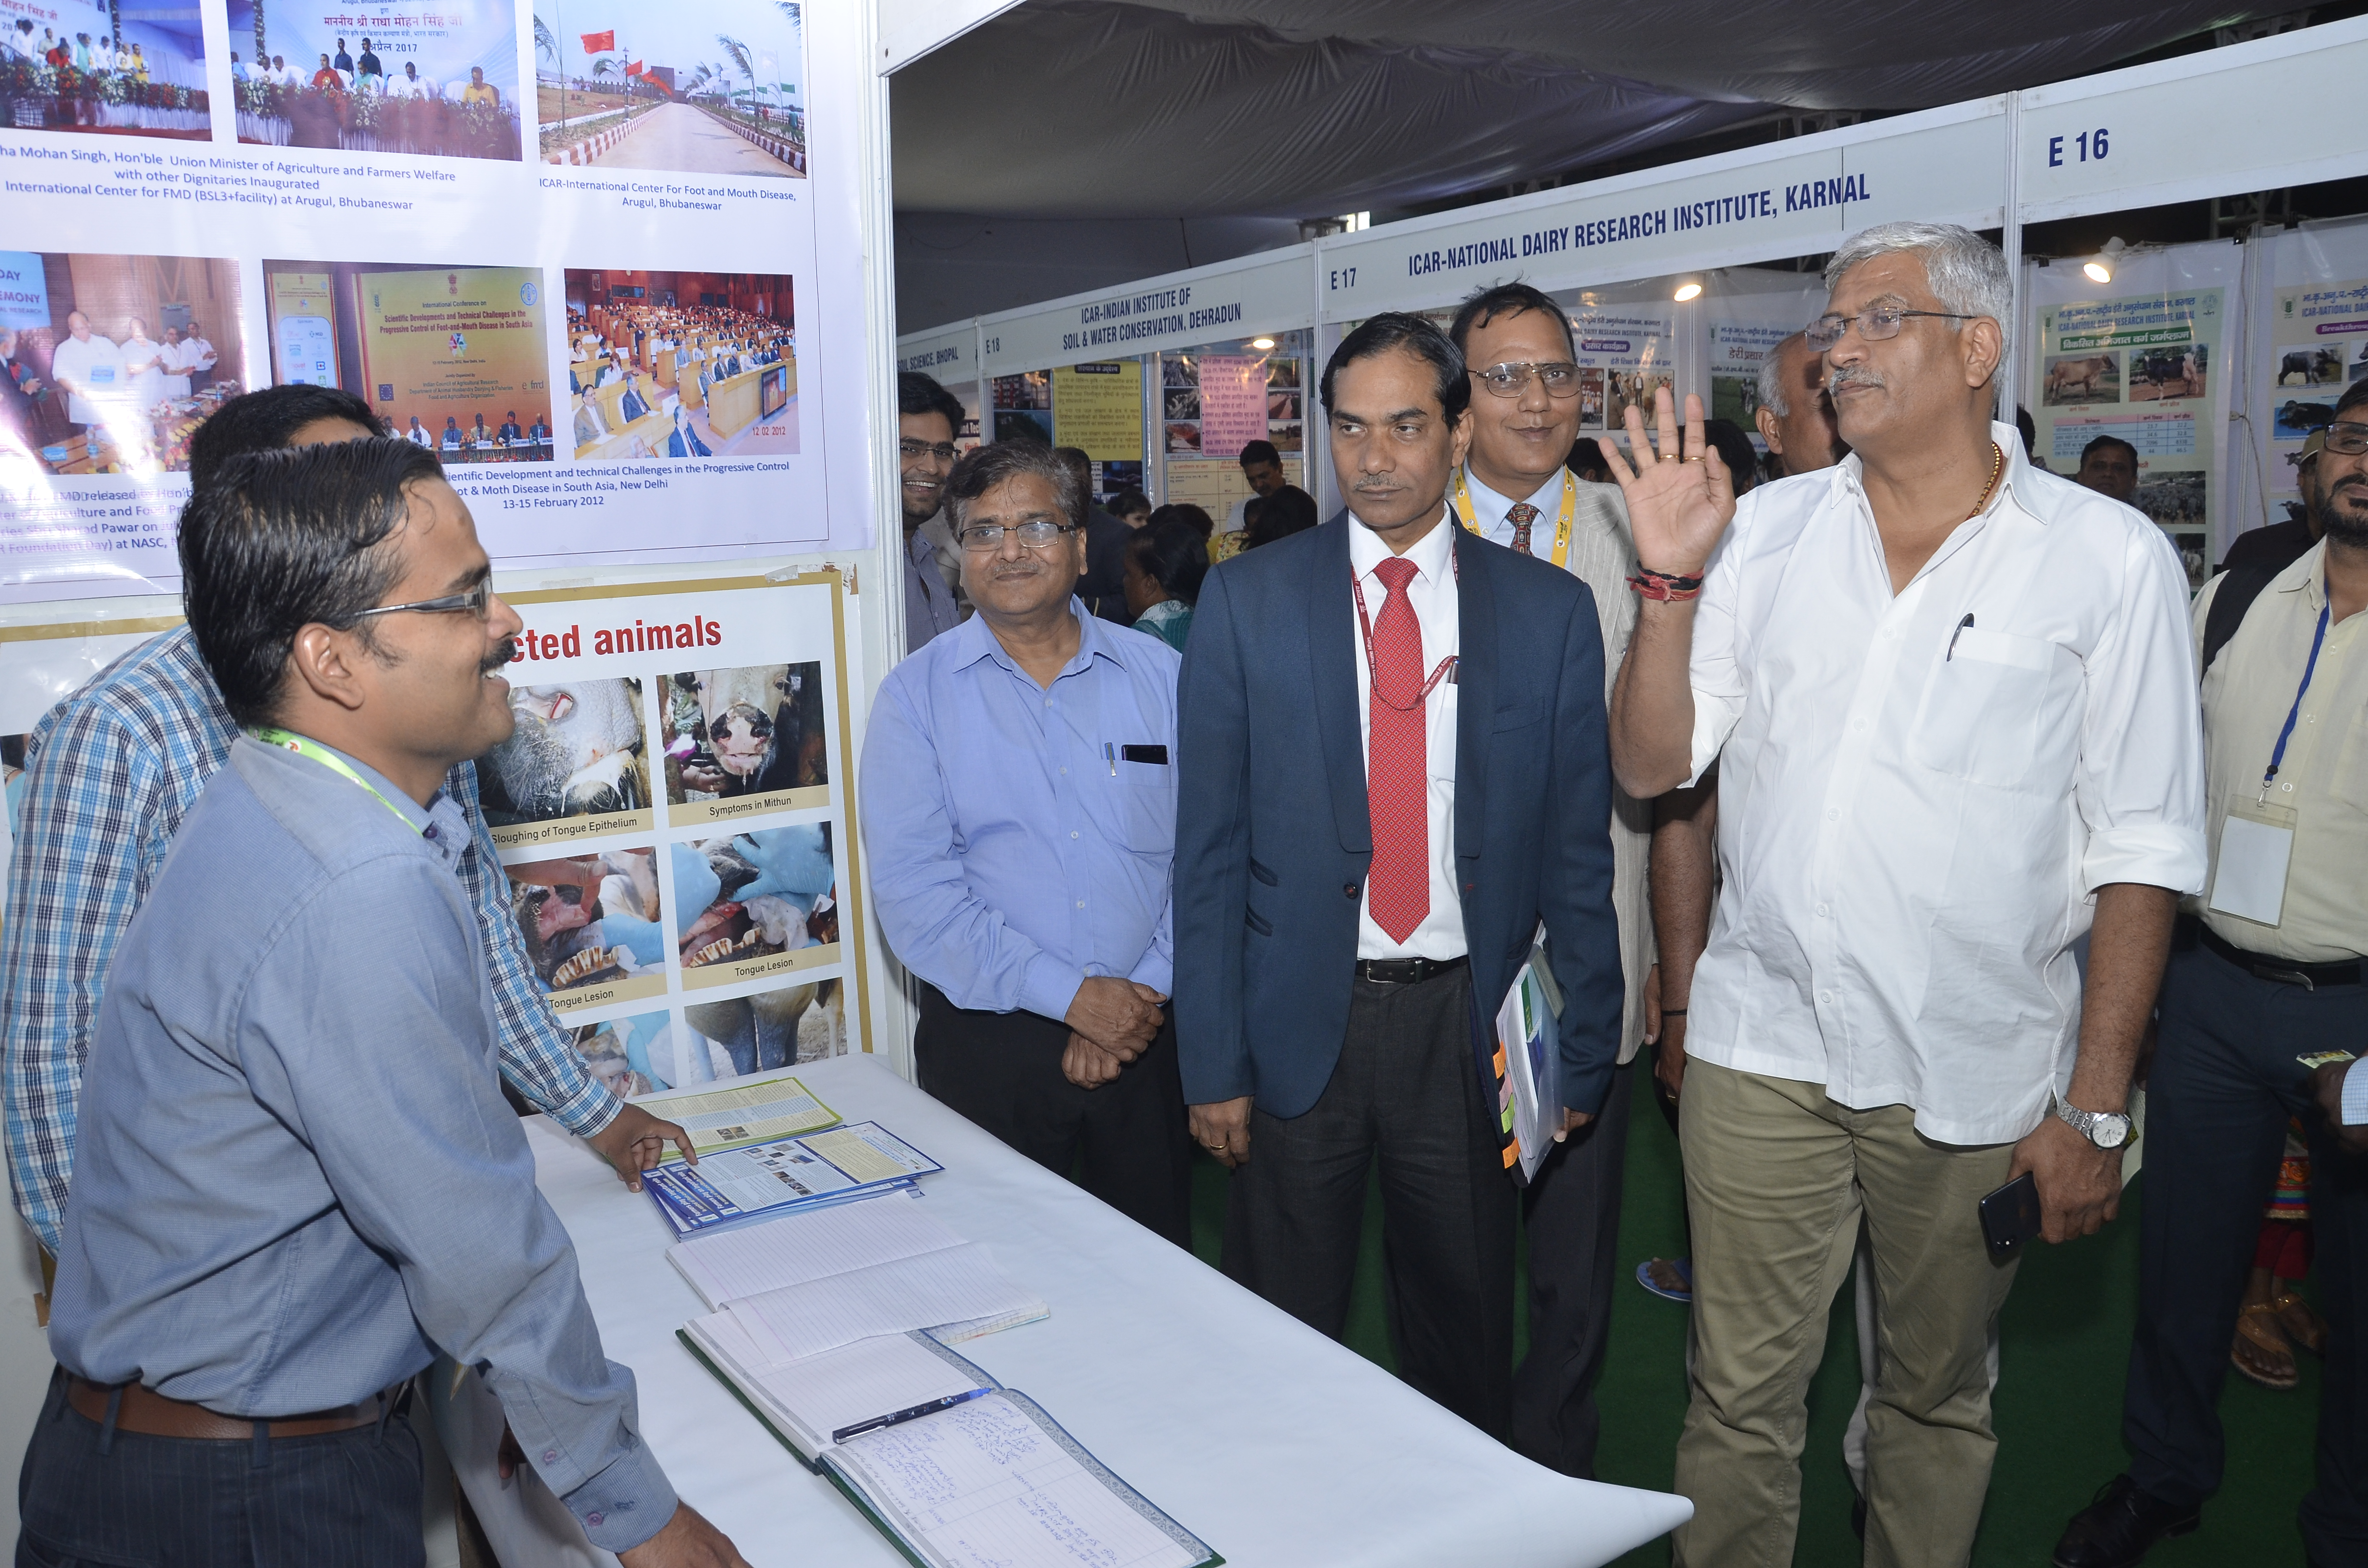 Shri Gajendra Singh Shekhawat MoS Agriculture & Farmers Welfare, Dr. T. Mohapatra, Secretary DARE and DG ICAR, Dr. J.P. Sharma, Joint Director (Ext) and Dr. A.K. Singh Head, Div of Genetics visiting stall during KUM 2018